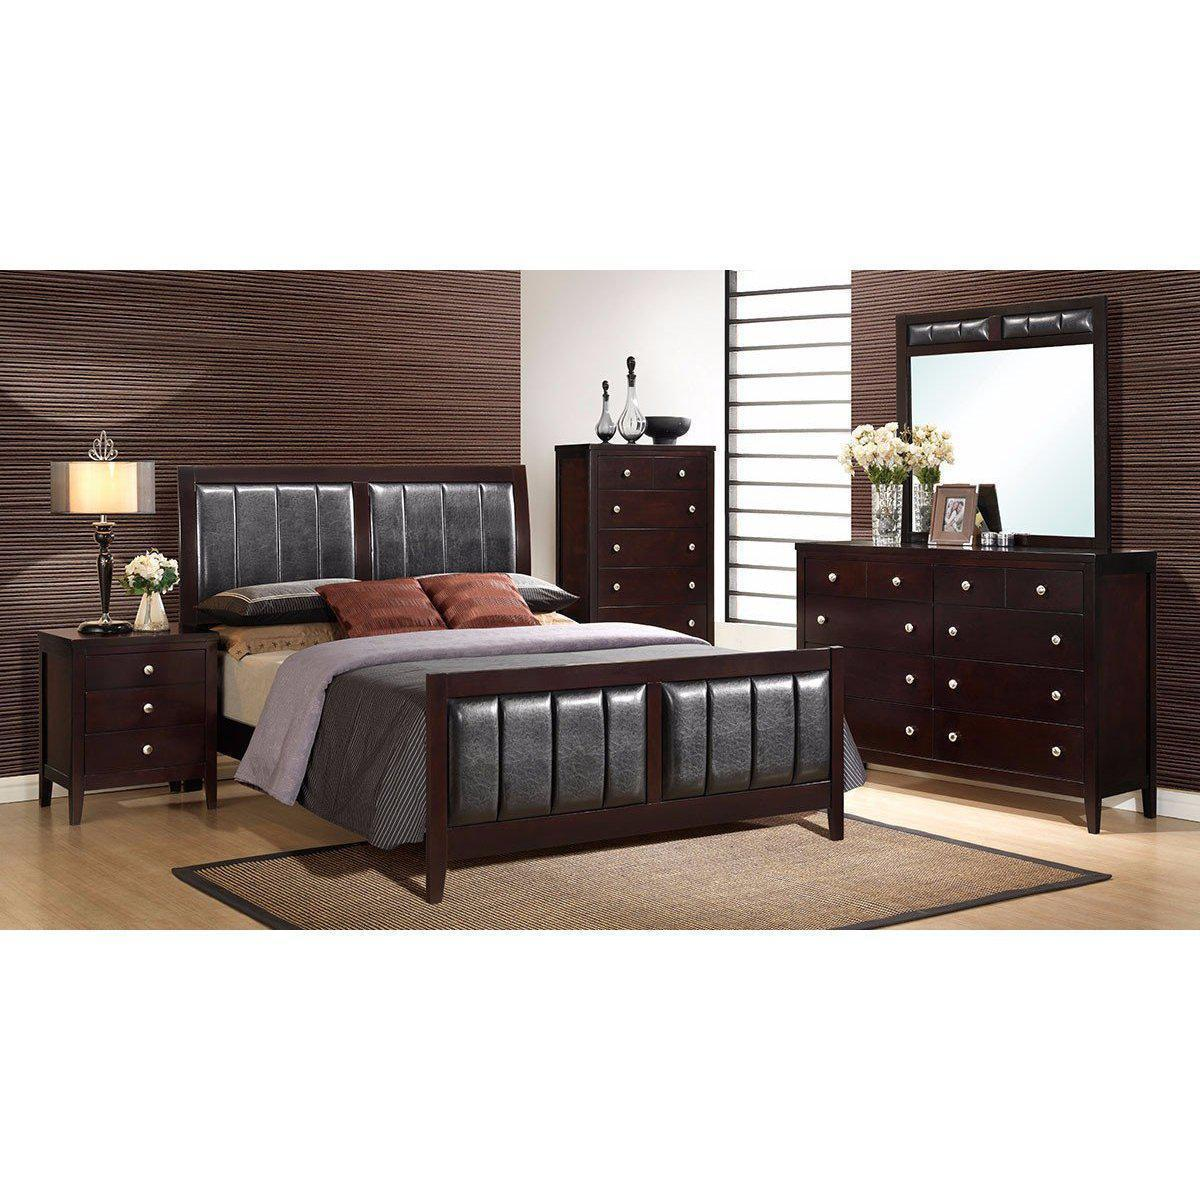 Rosa Bedroom Set